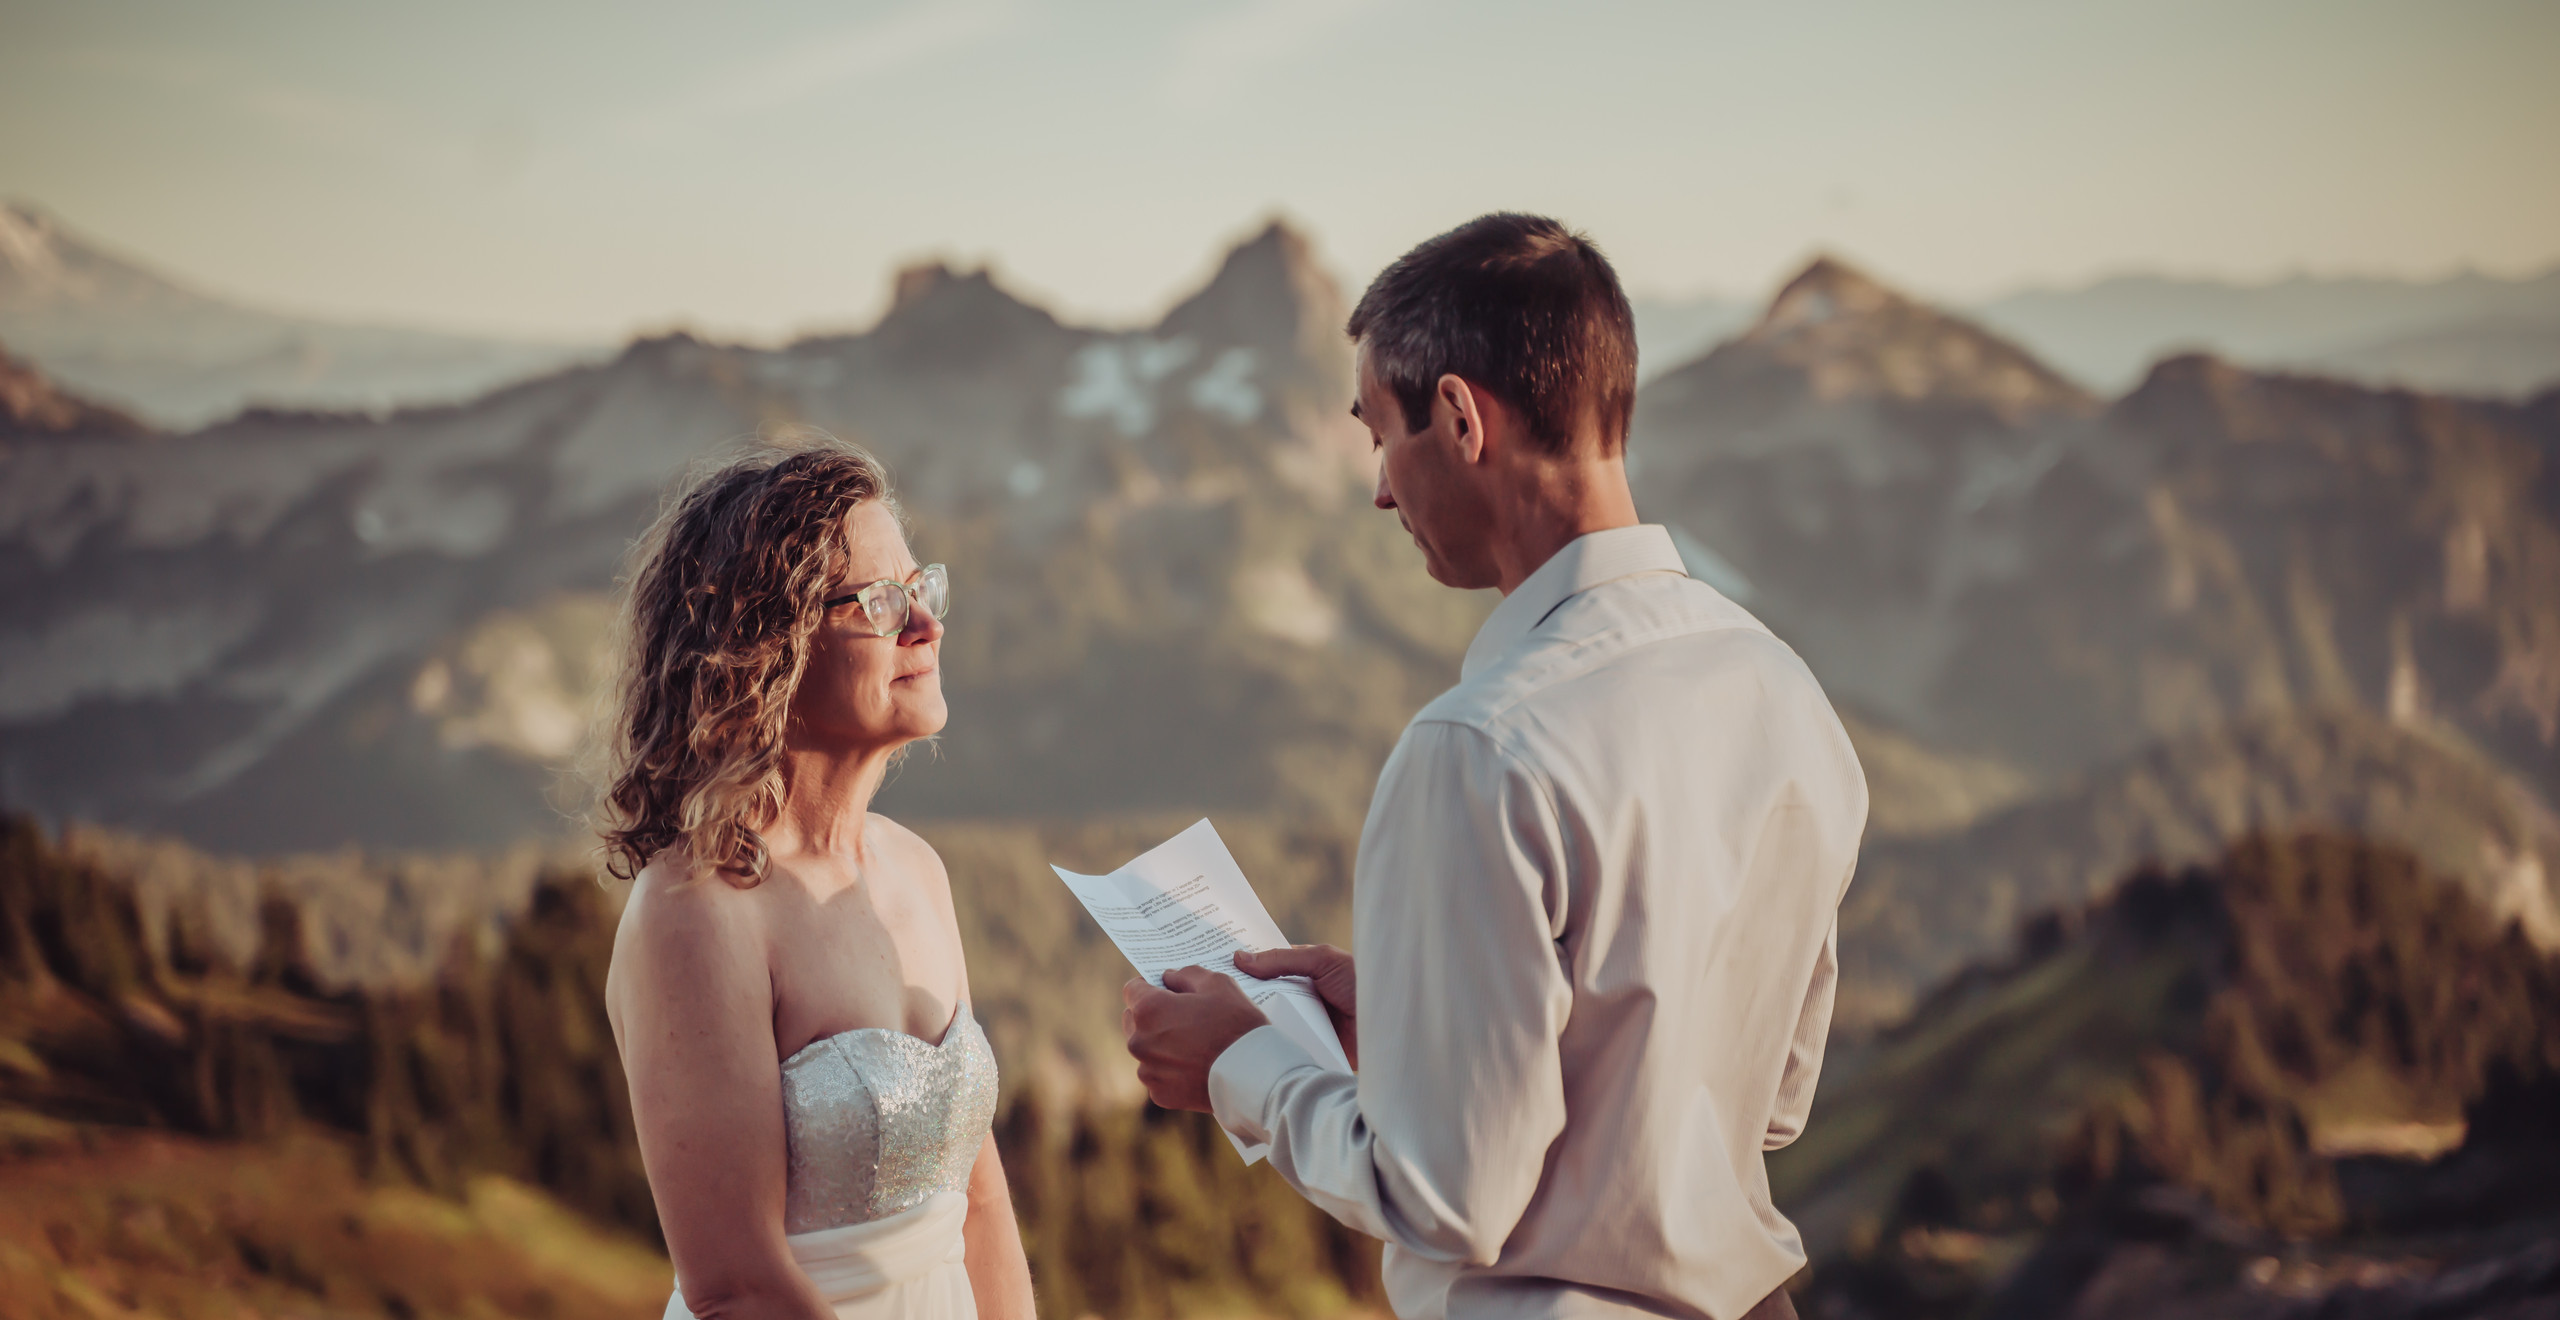 Groom reading his vows at his Mount Rainier Elopement with a backdrop of the mountains surrounding Mt. Rainier